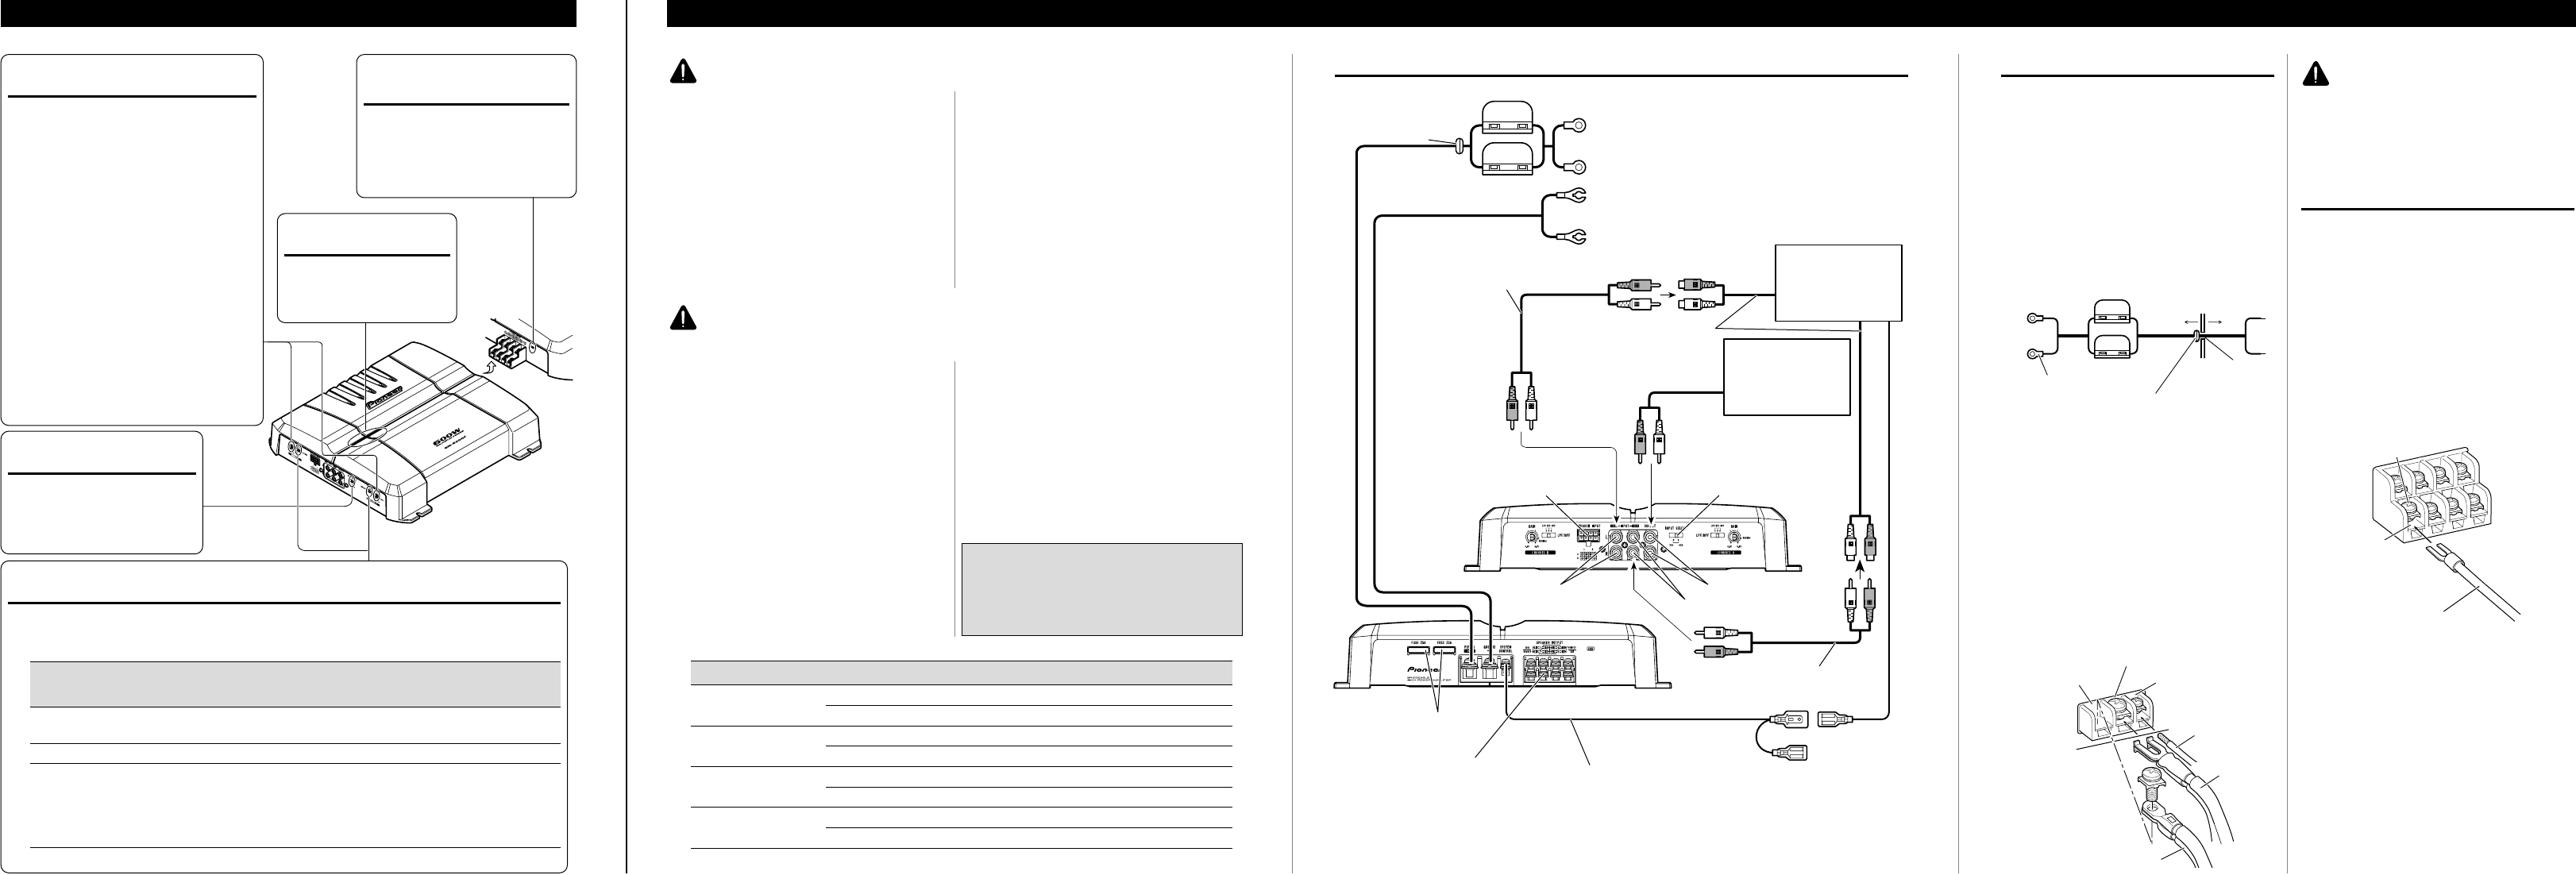 page 2 of pioneer car stereo system gm 6300f user guide connection diagram